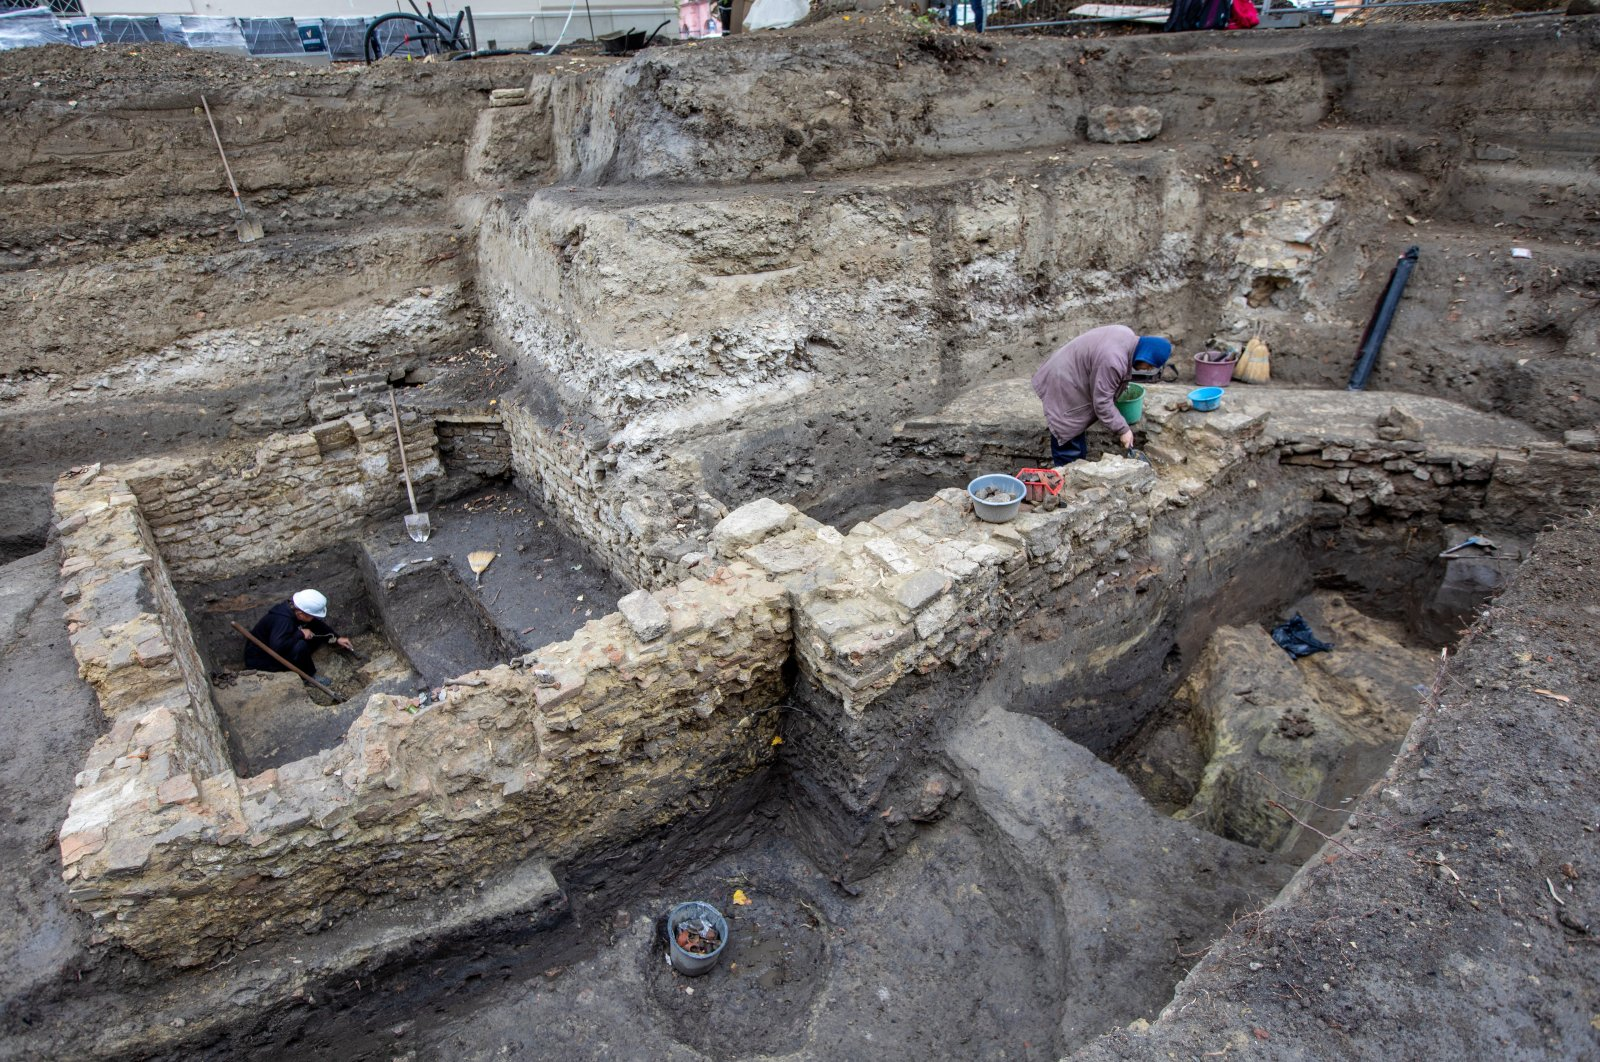 The excavation site of an Ottoman-era tannery building unearthed in Szeged, Hungary, Oct. 1, 2020. (AA Photo)